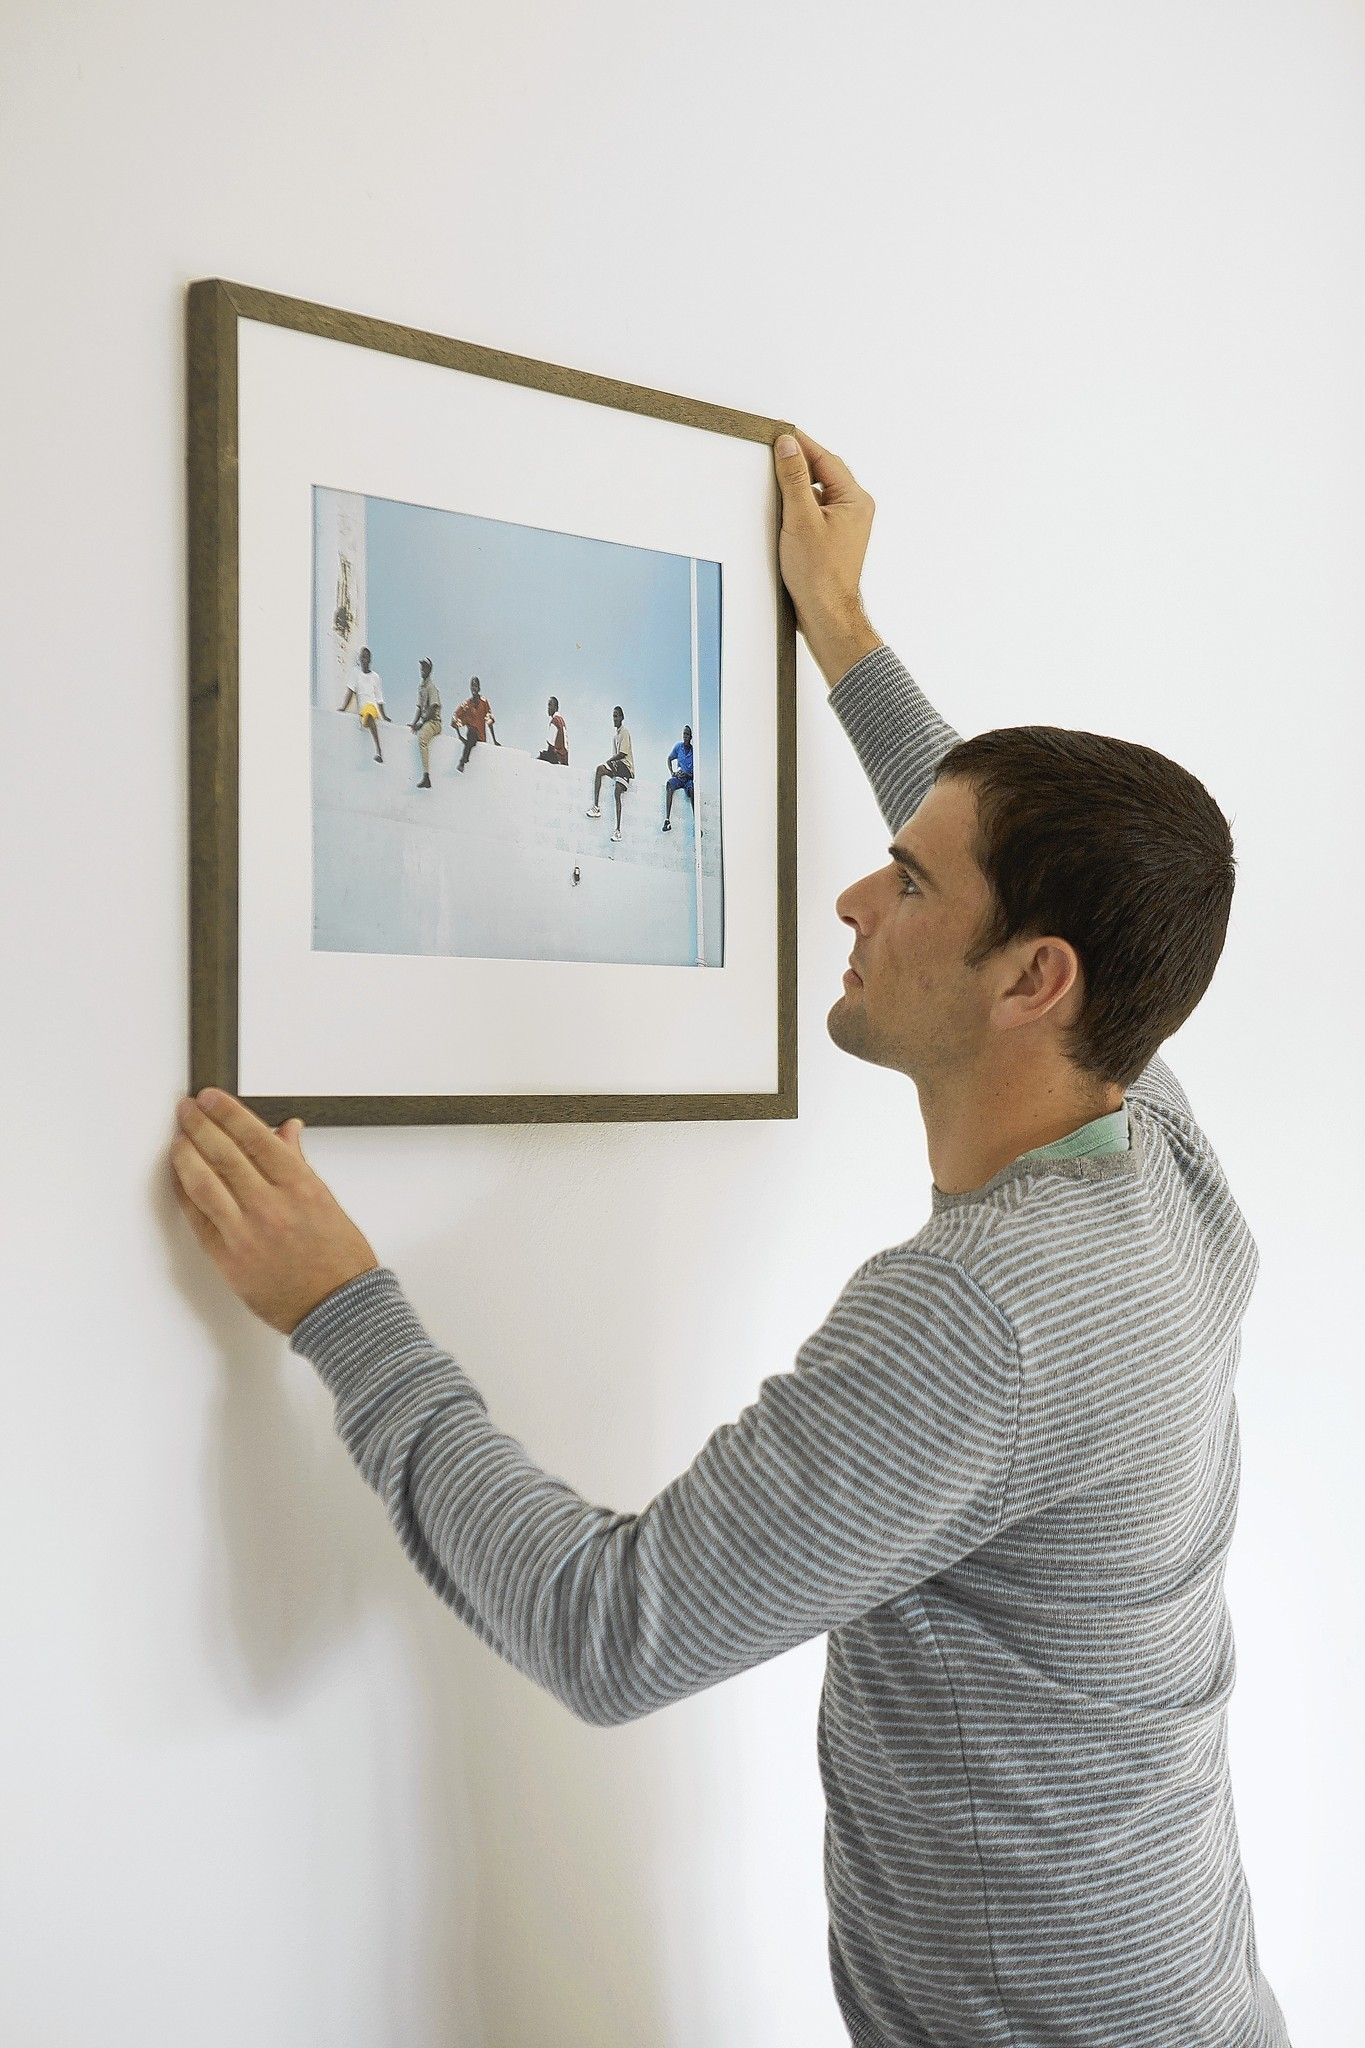 How to save money on framing - Chicago Tribune